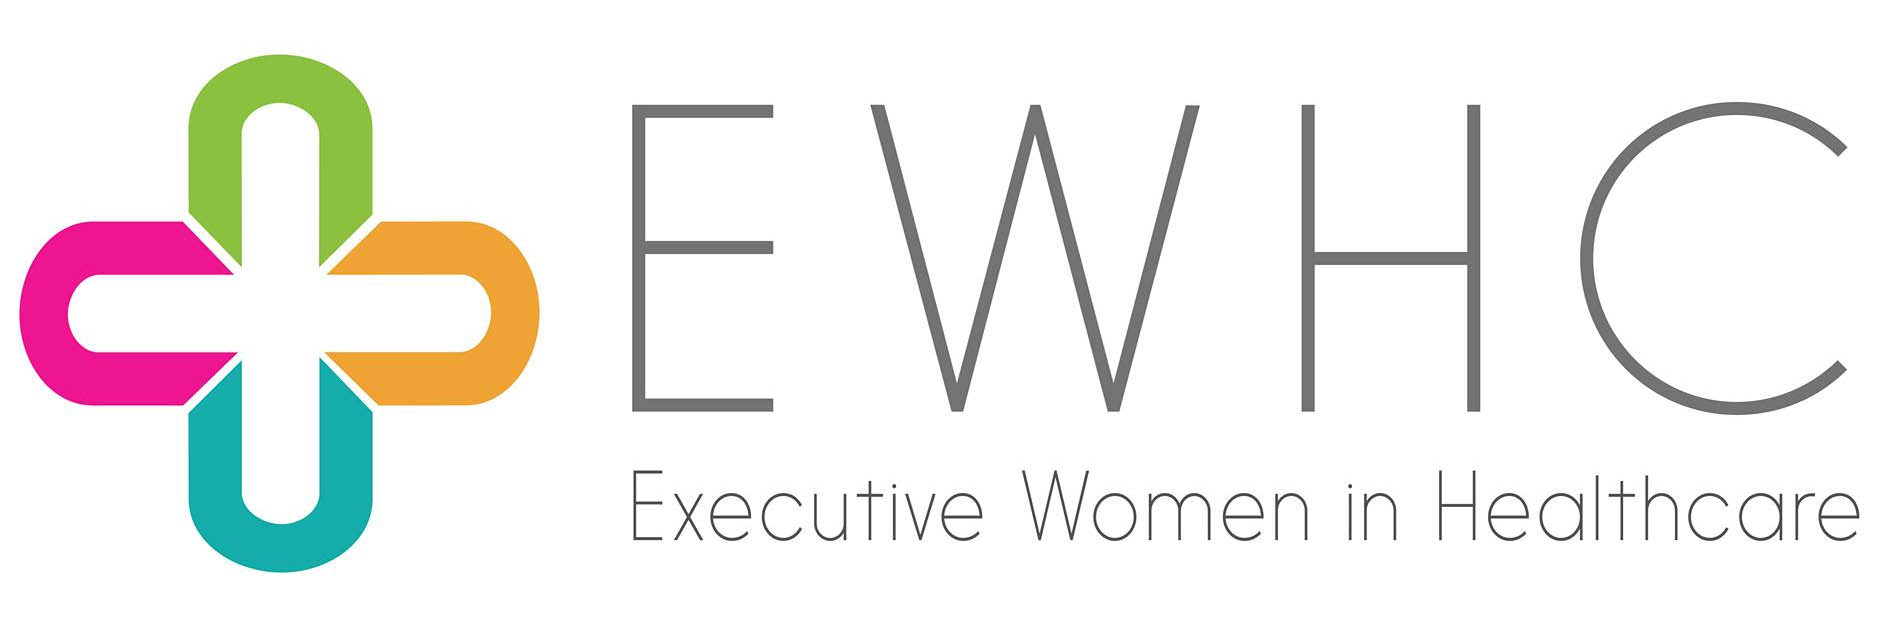 Executive Women in Healthcare -logo